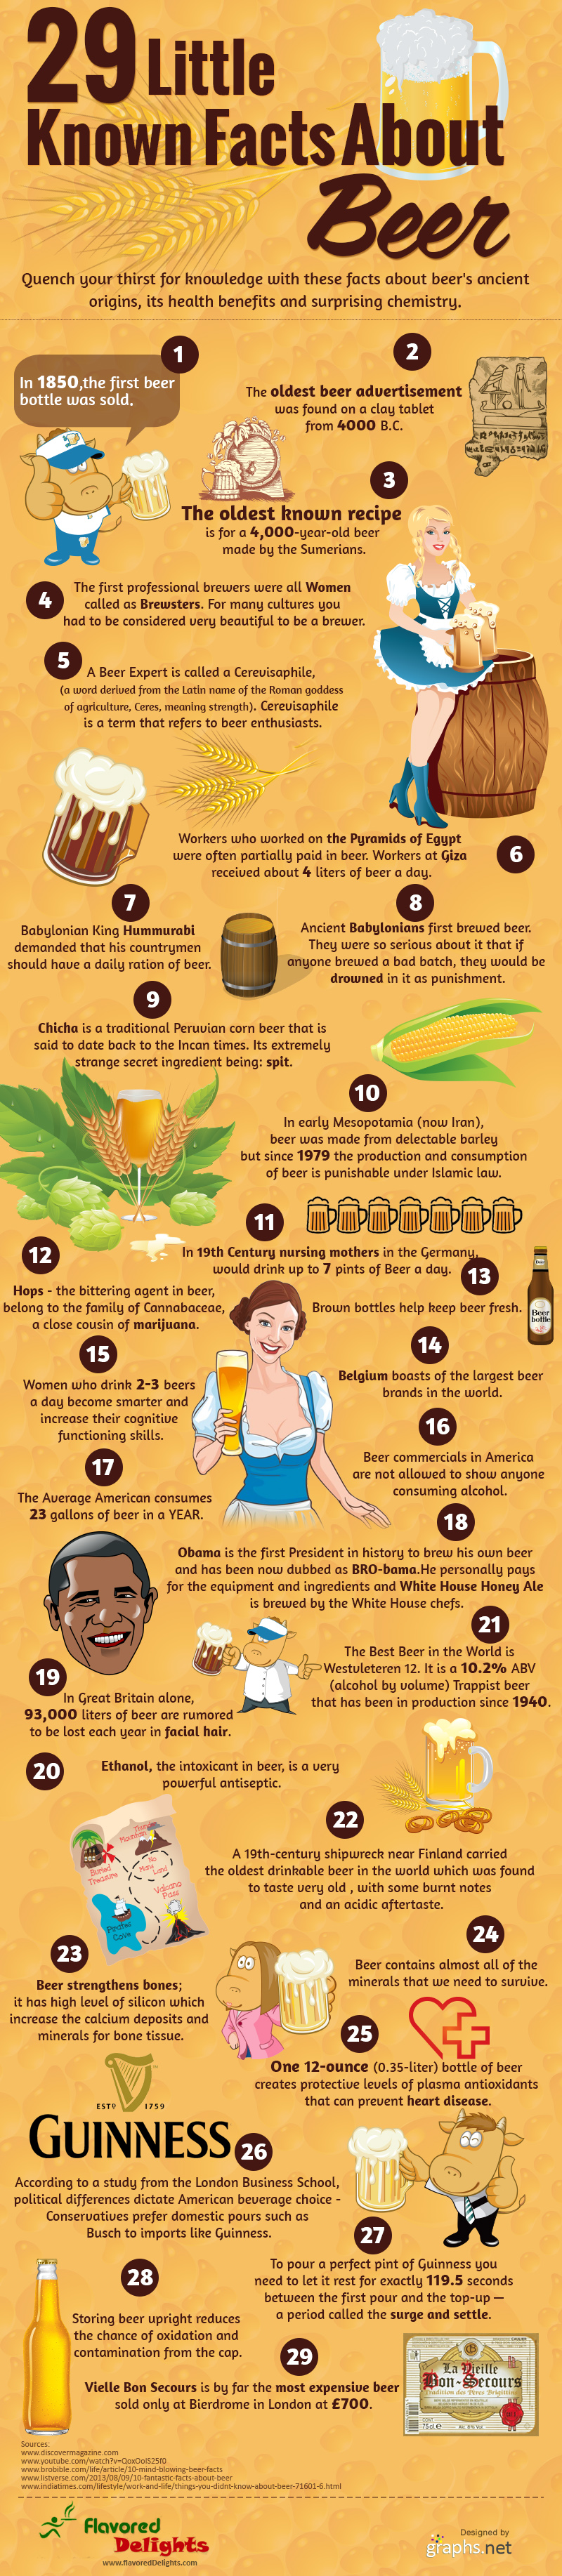 29 Little Known Facts about Beer